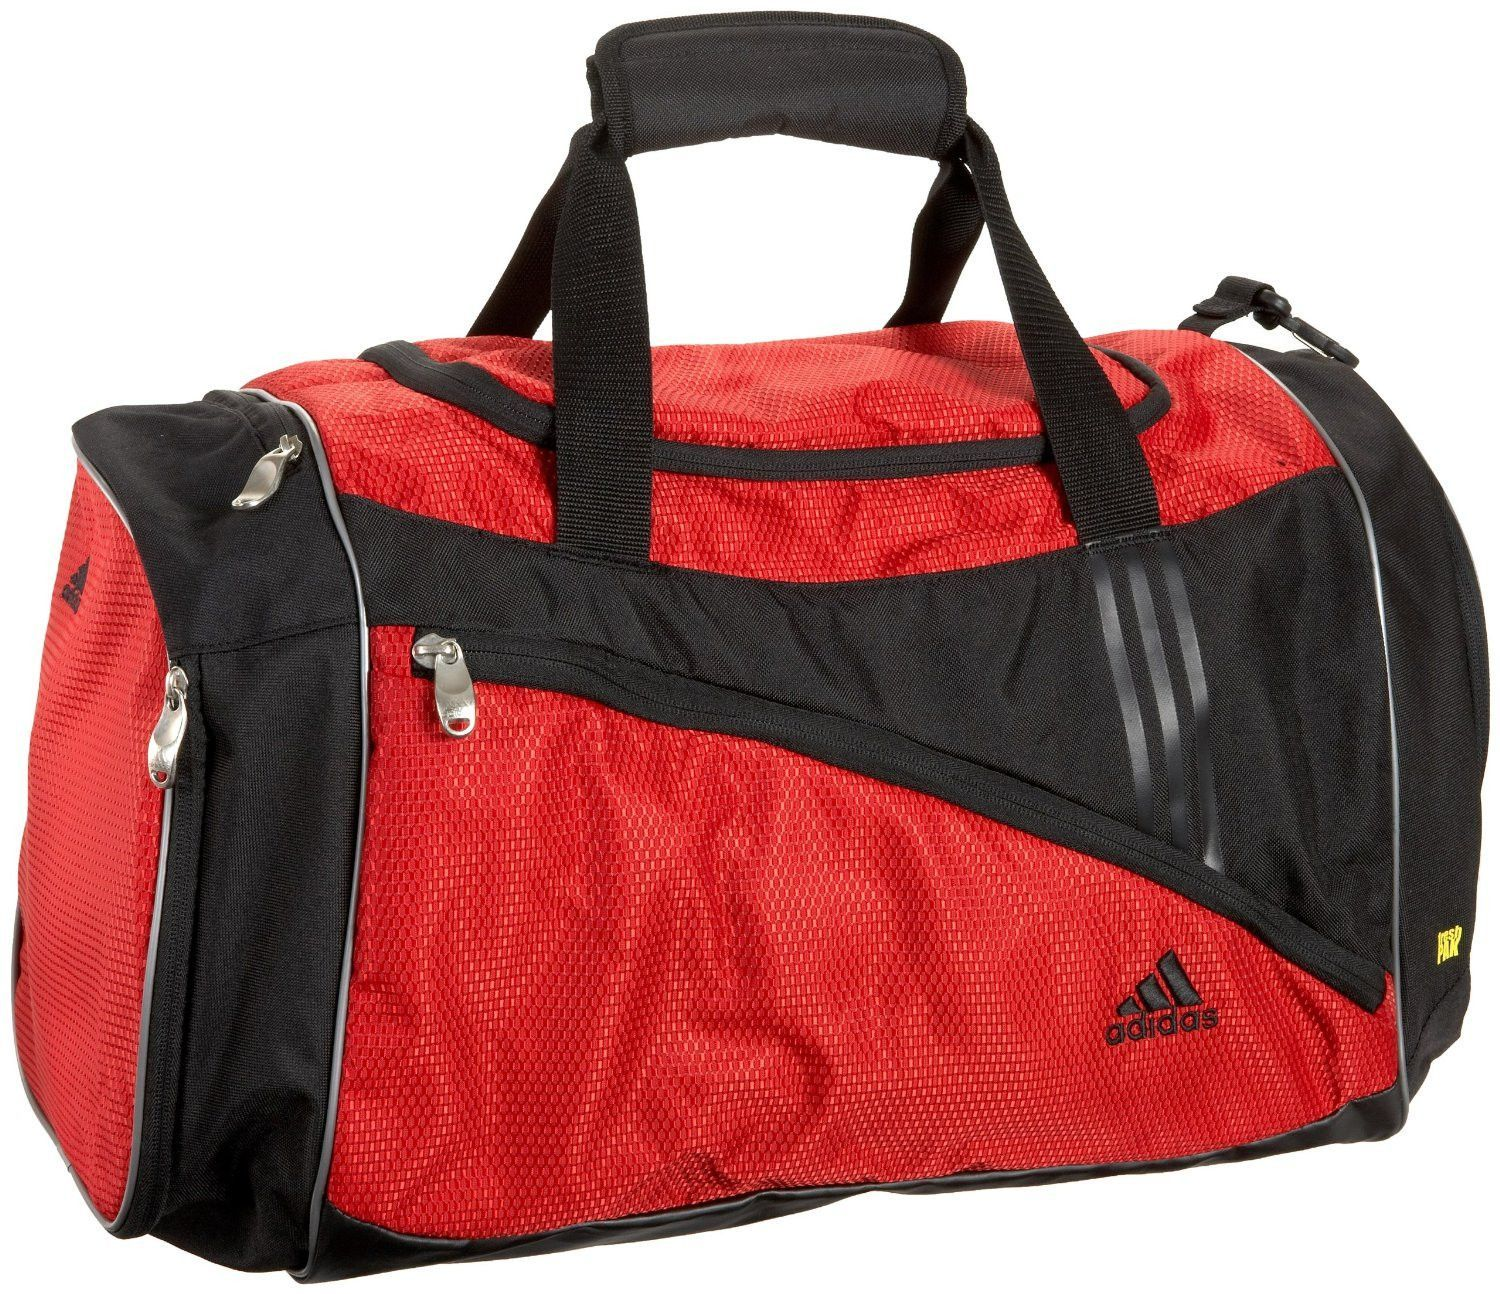 This Adidas Scorch Team Duffel Bag Is Made To Carry Everything You Need For Those Big Tournaments And Games It Has A Large Main Compartment With Sturdy